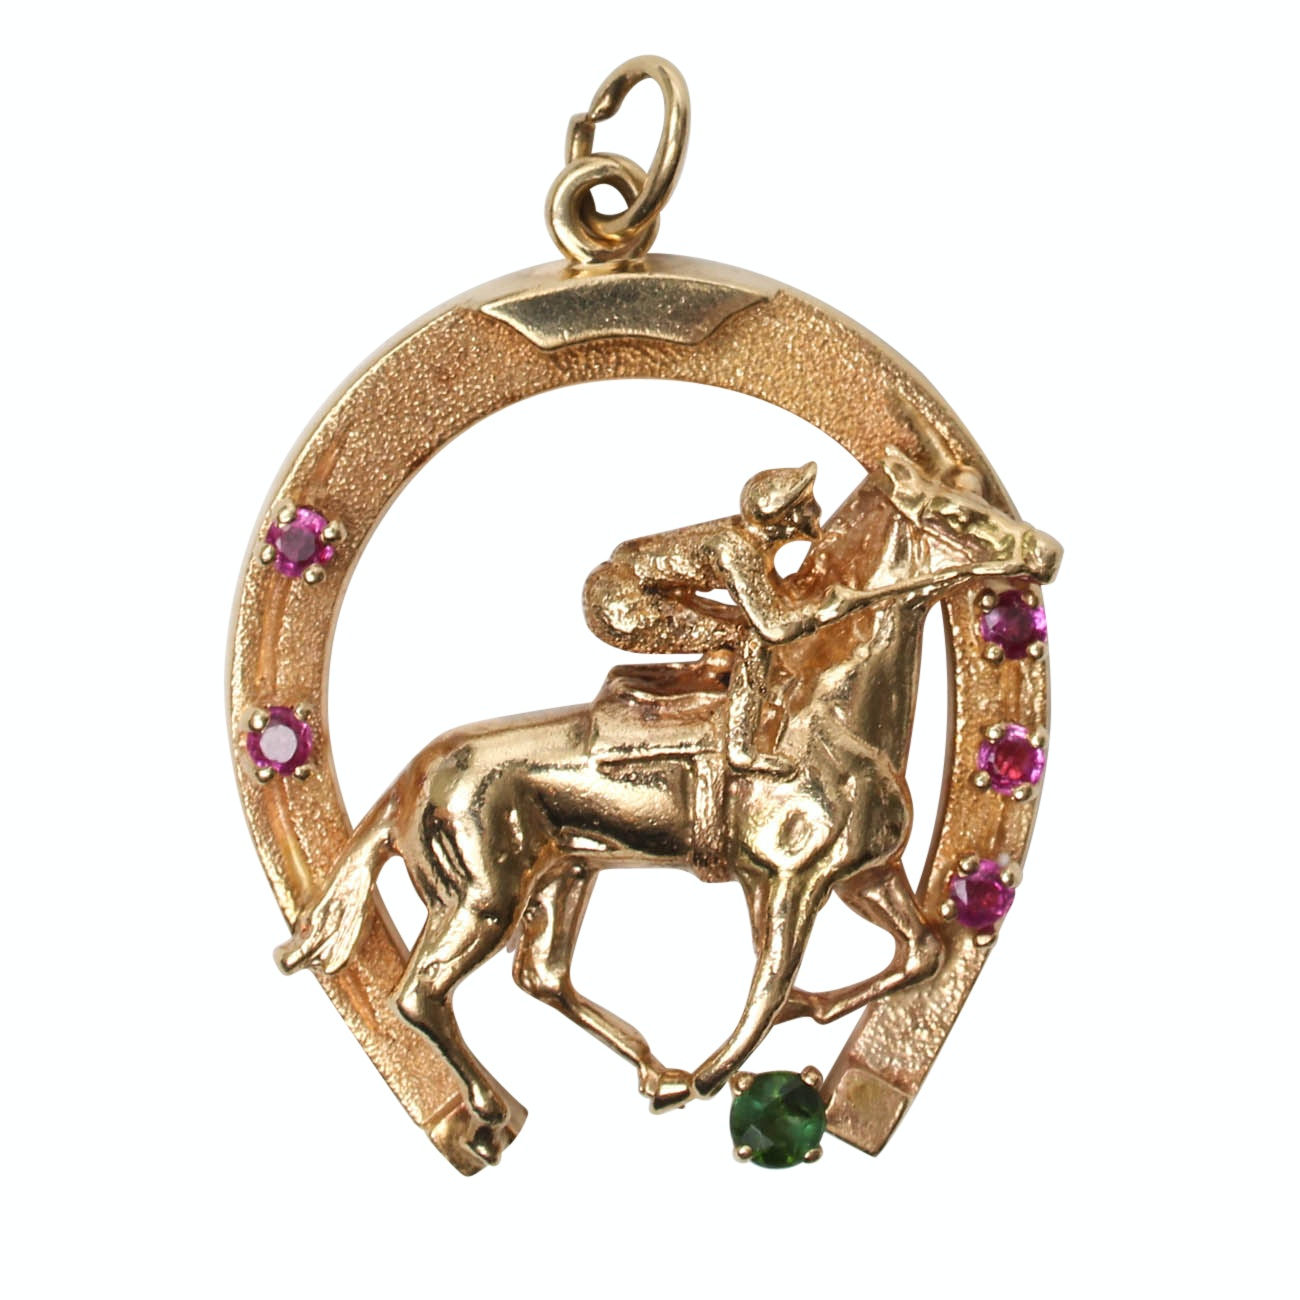 14K Yellow Gold Pendant with Rubies and Green Tourmaline